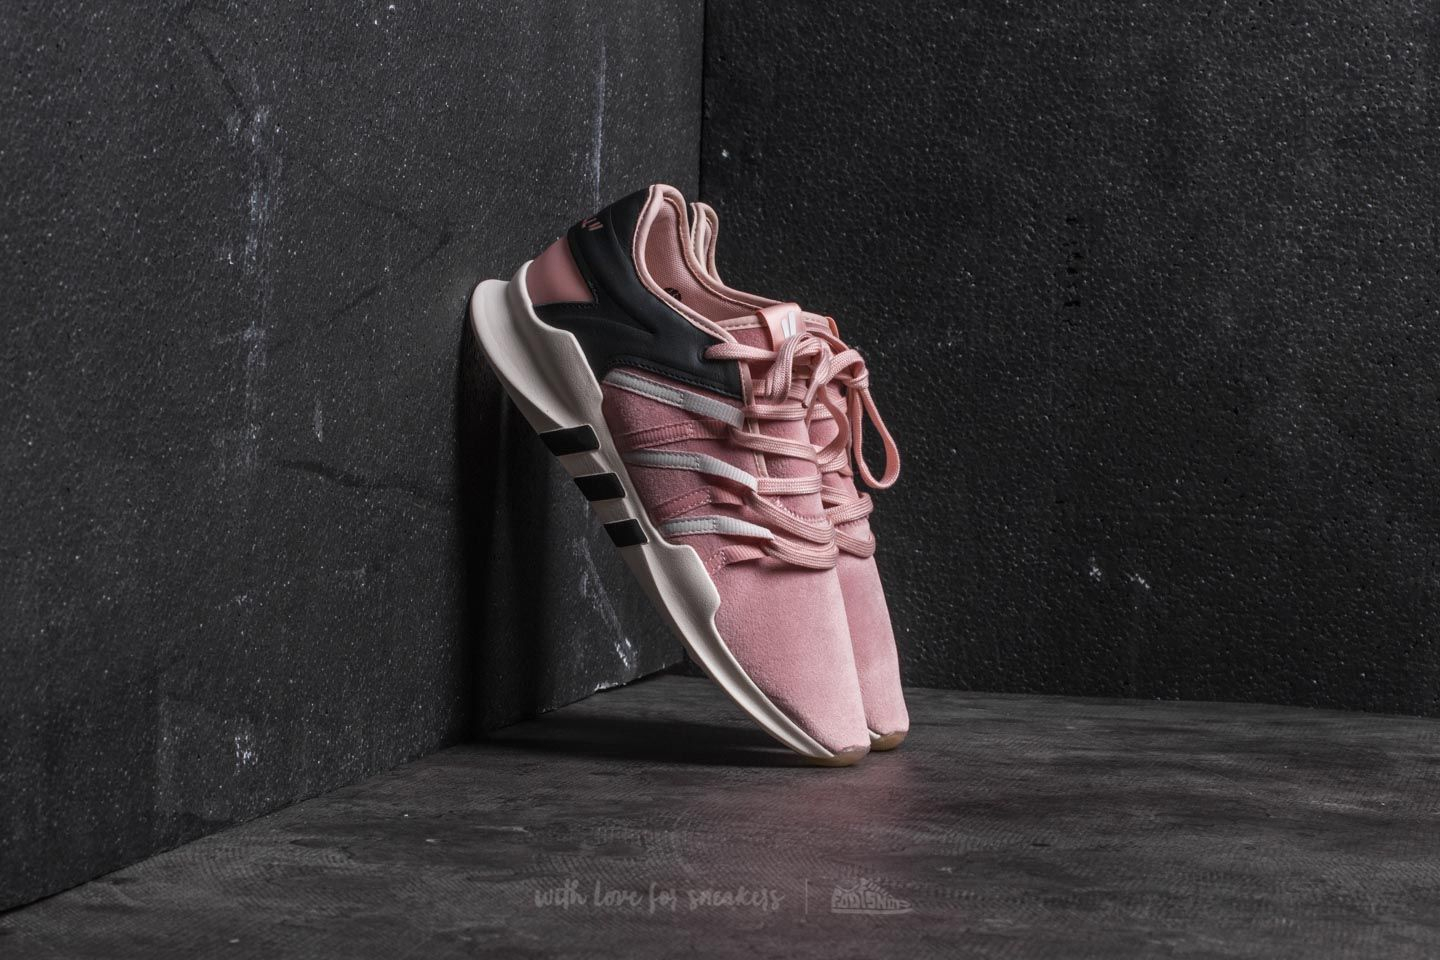 adidas Consortium x Overkill x Fruition Sneaker Exchange EQT Lacing ADV Vapour Pink/ Icey Pink/ Clear White - 20741